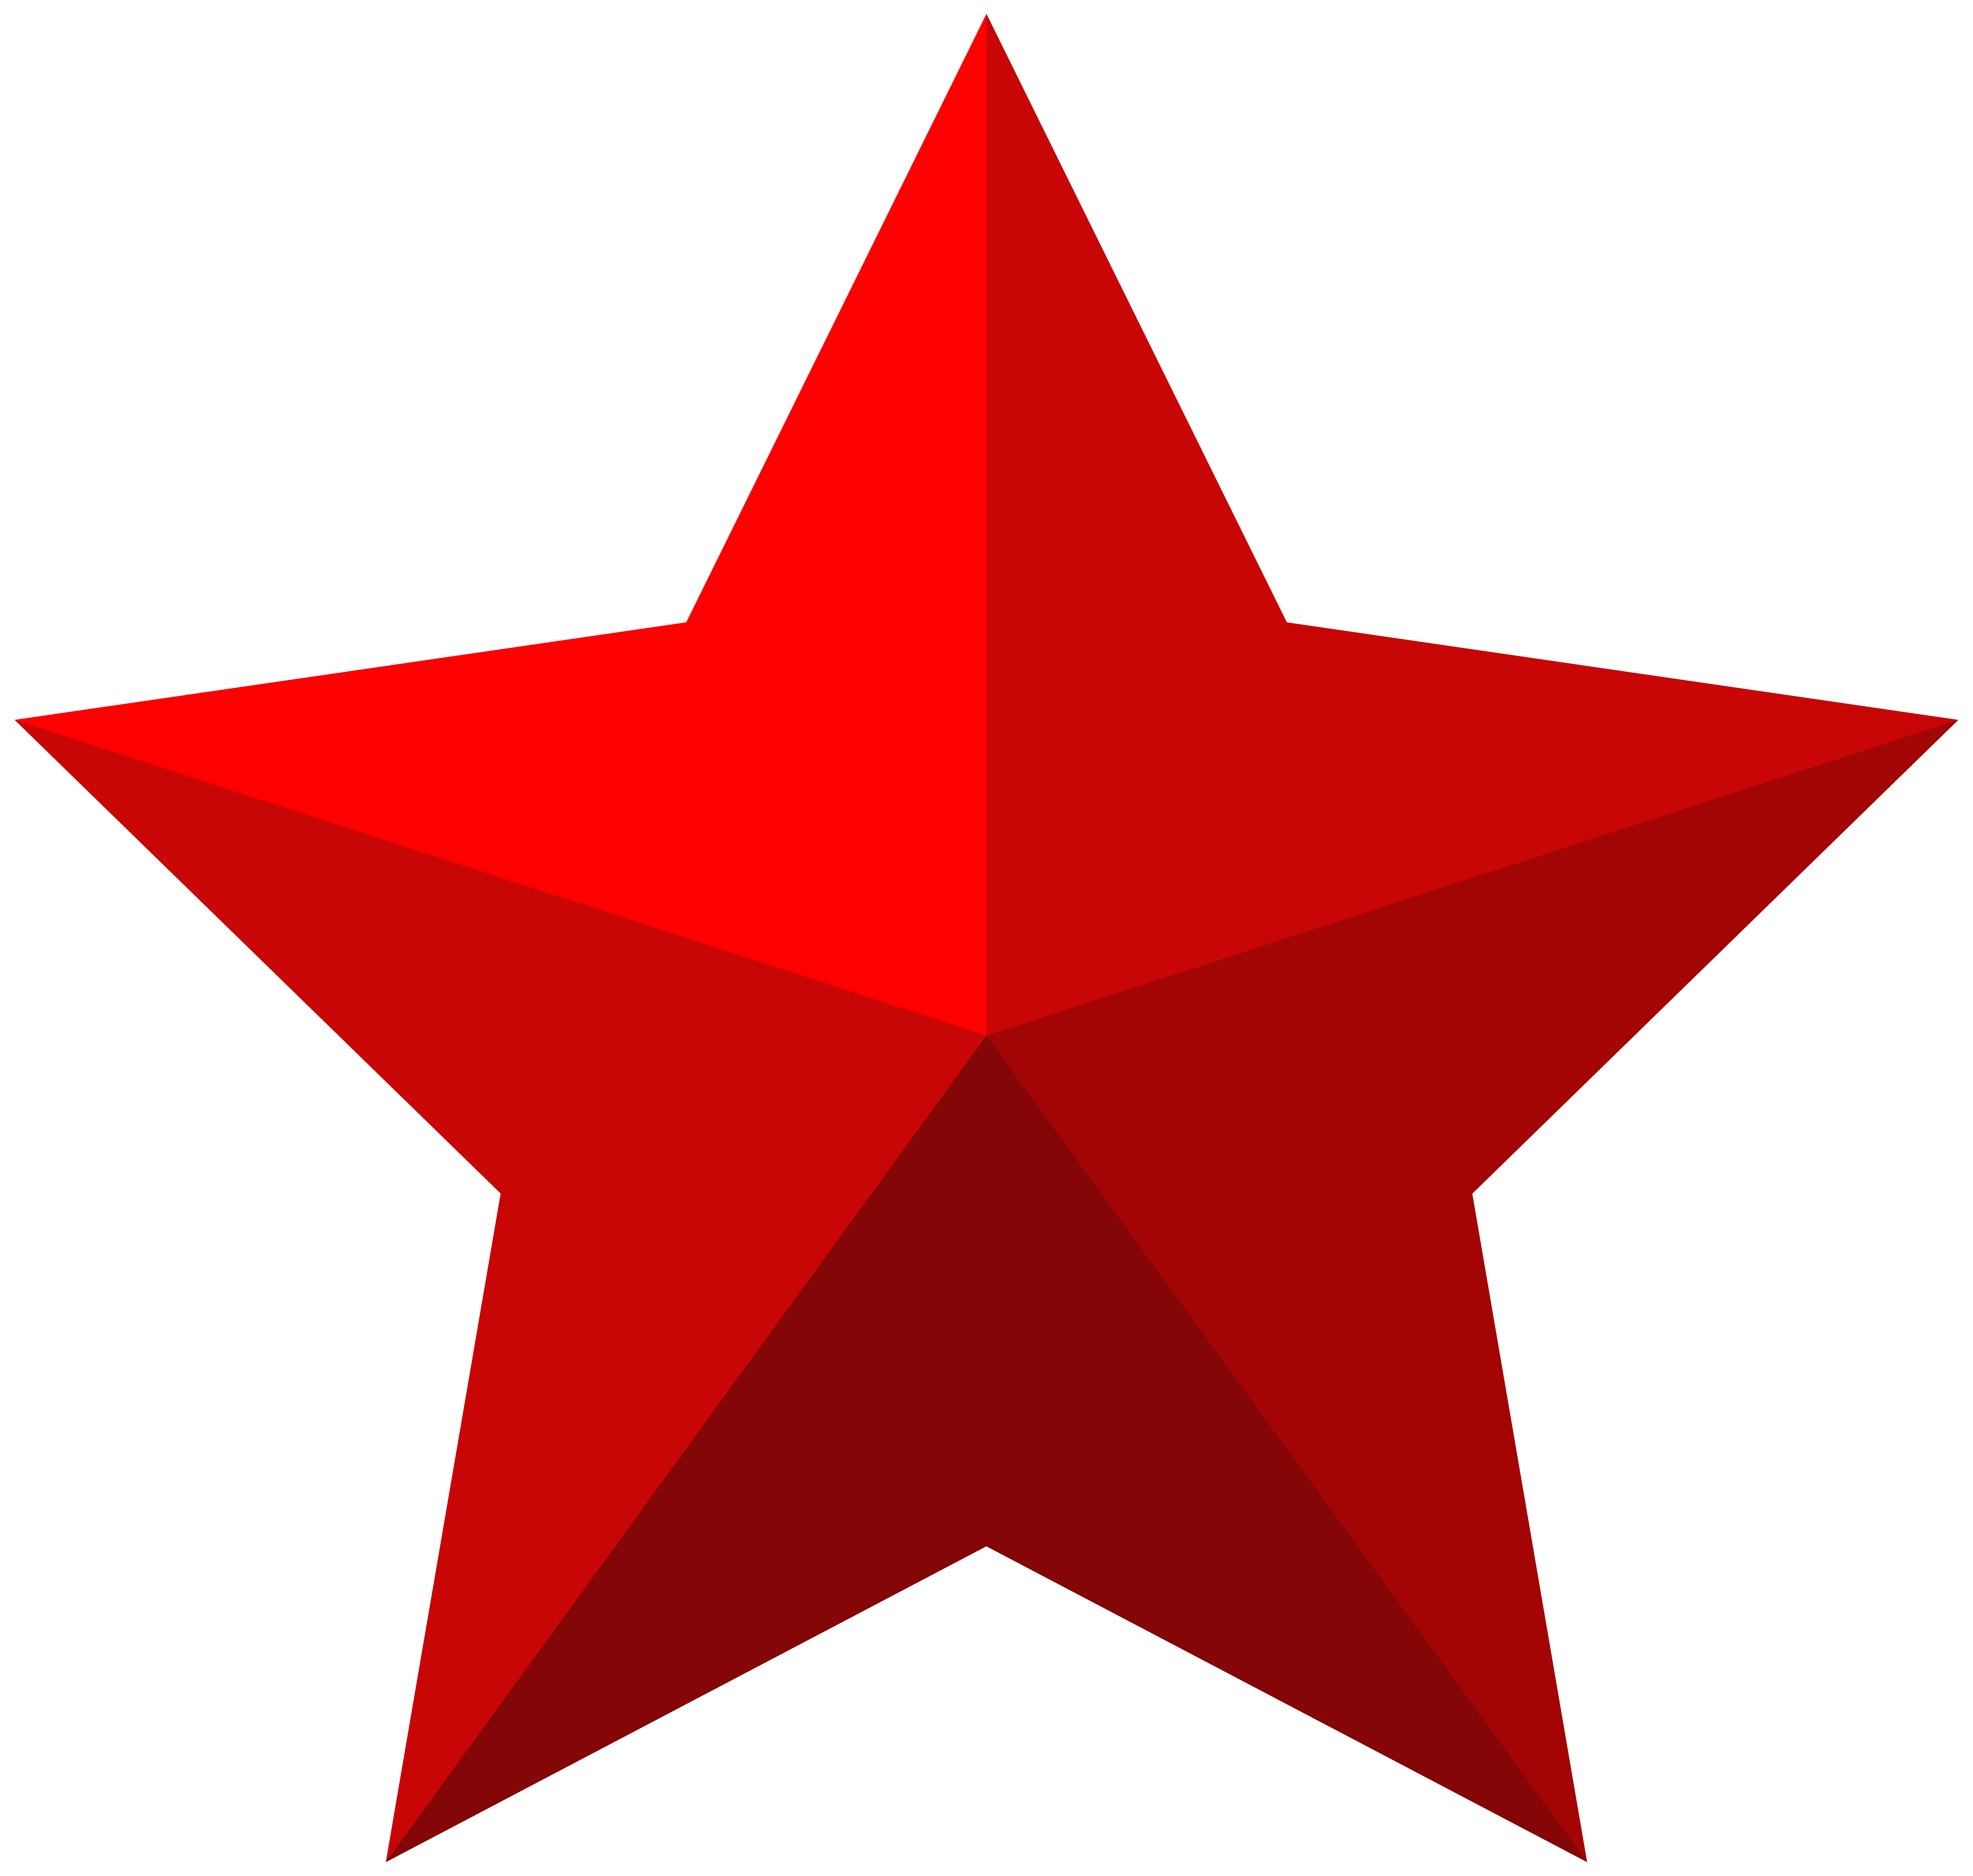 Star clip art png. Red image gallery yopriceville